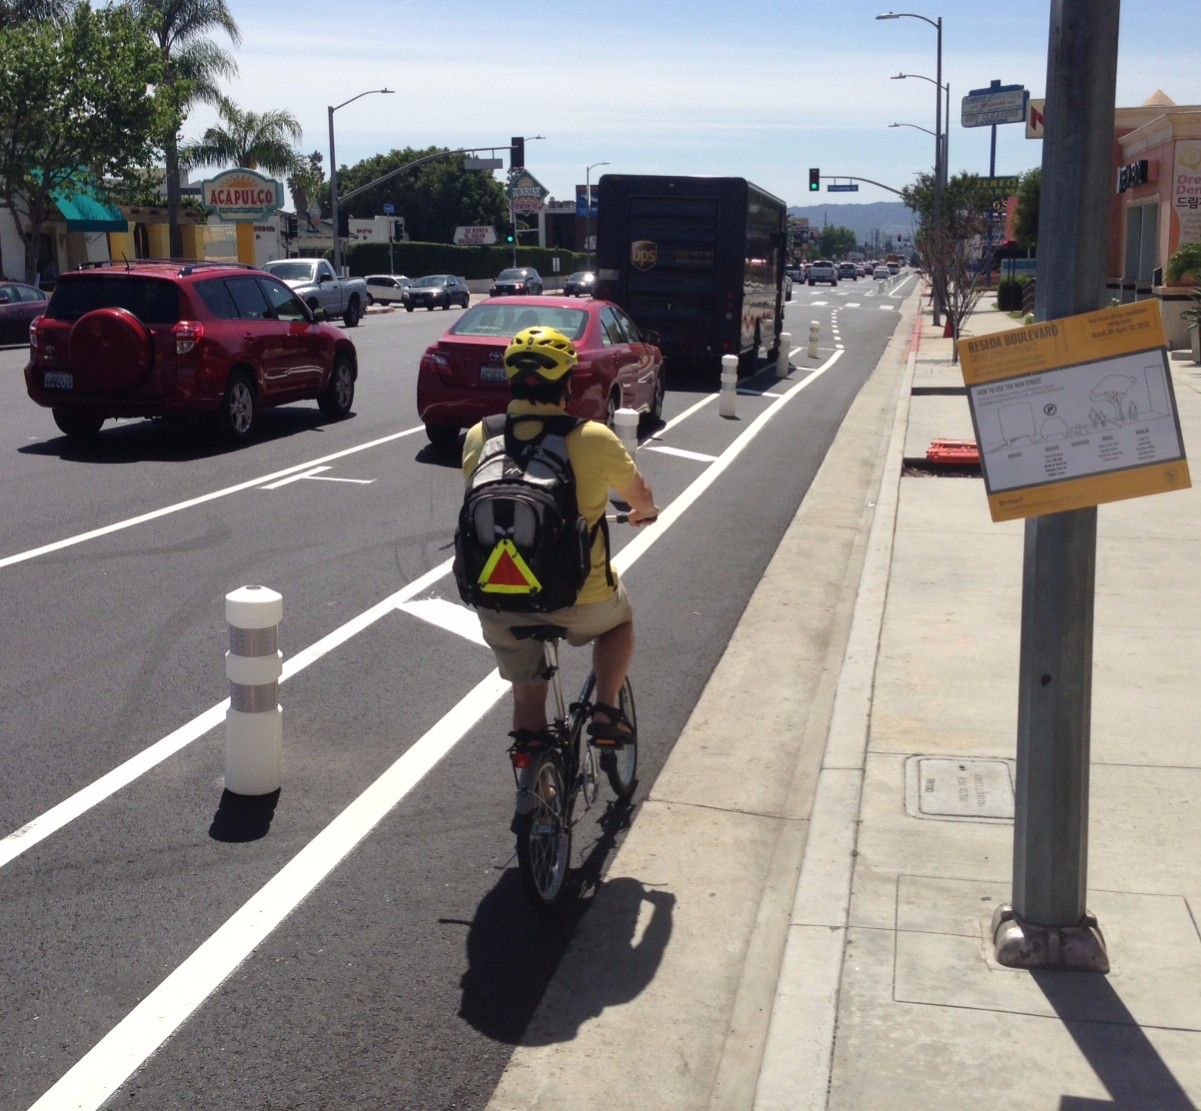 New parking-protected bike lanes on Reseda Boulevard. All photos: Joe Linton/Streetsblog L.A.